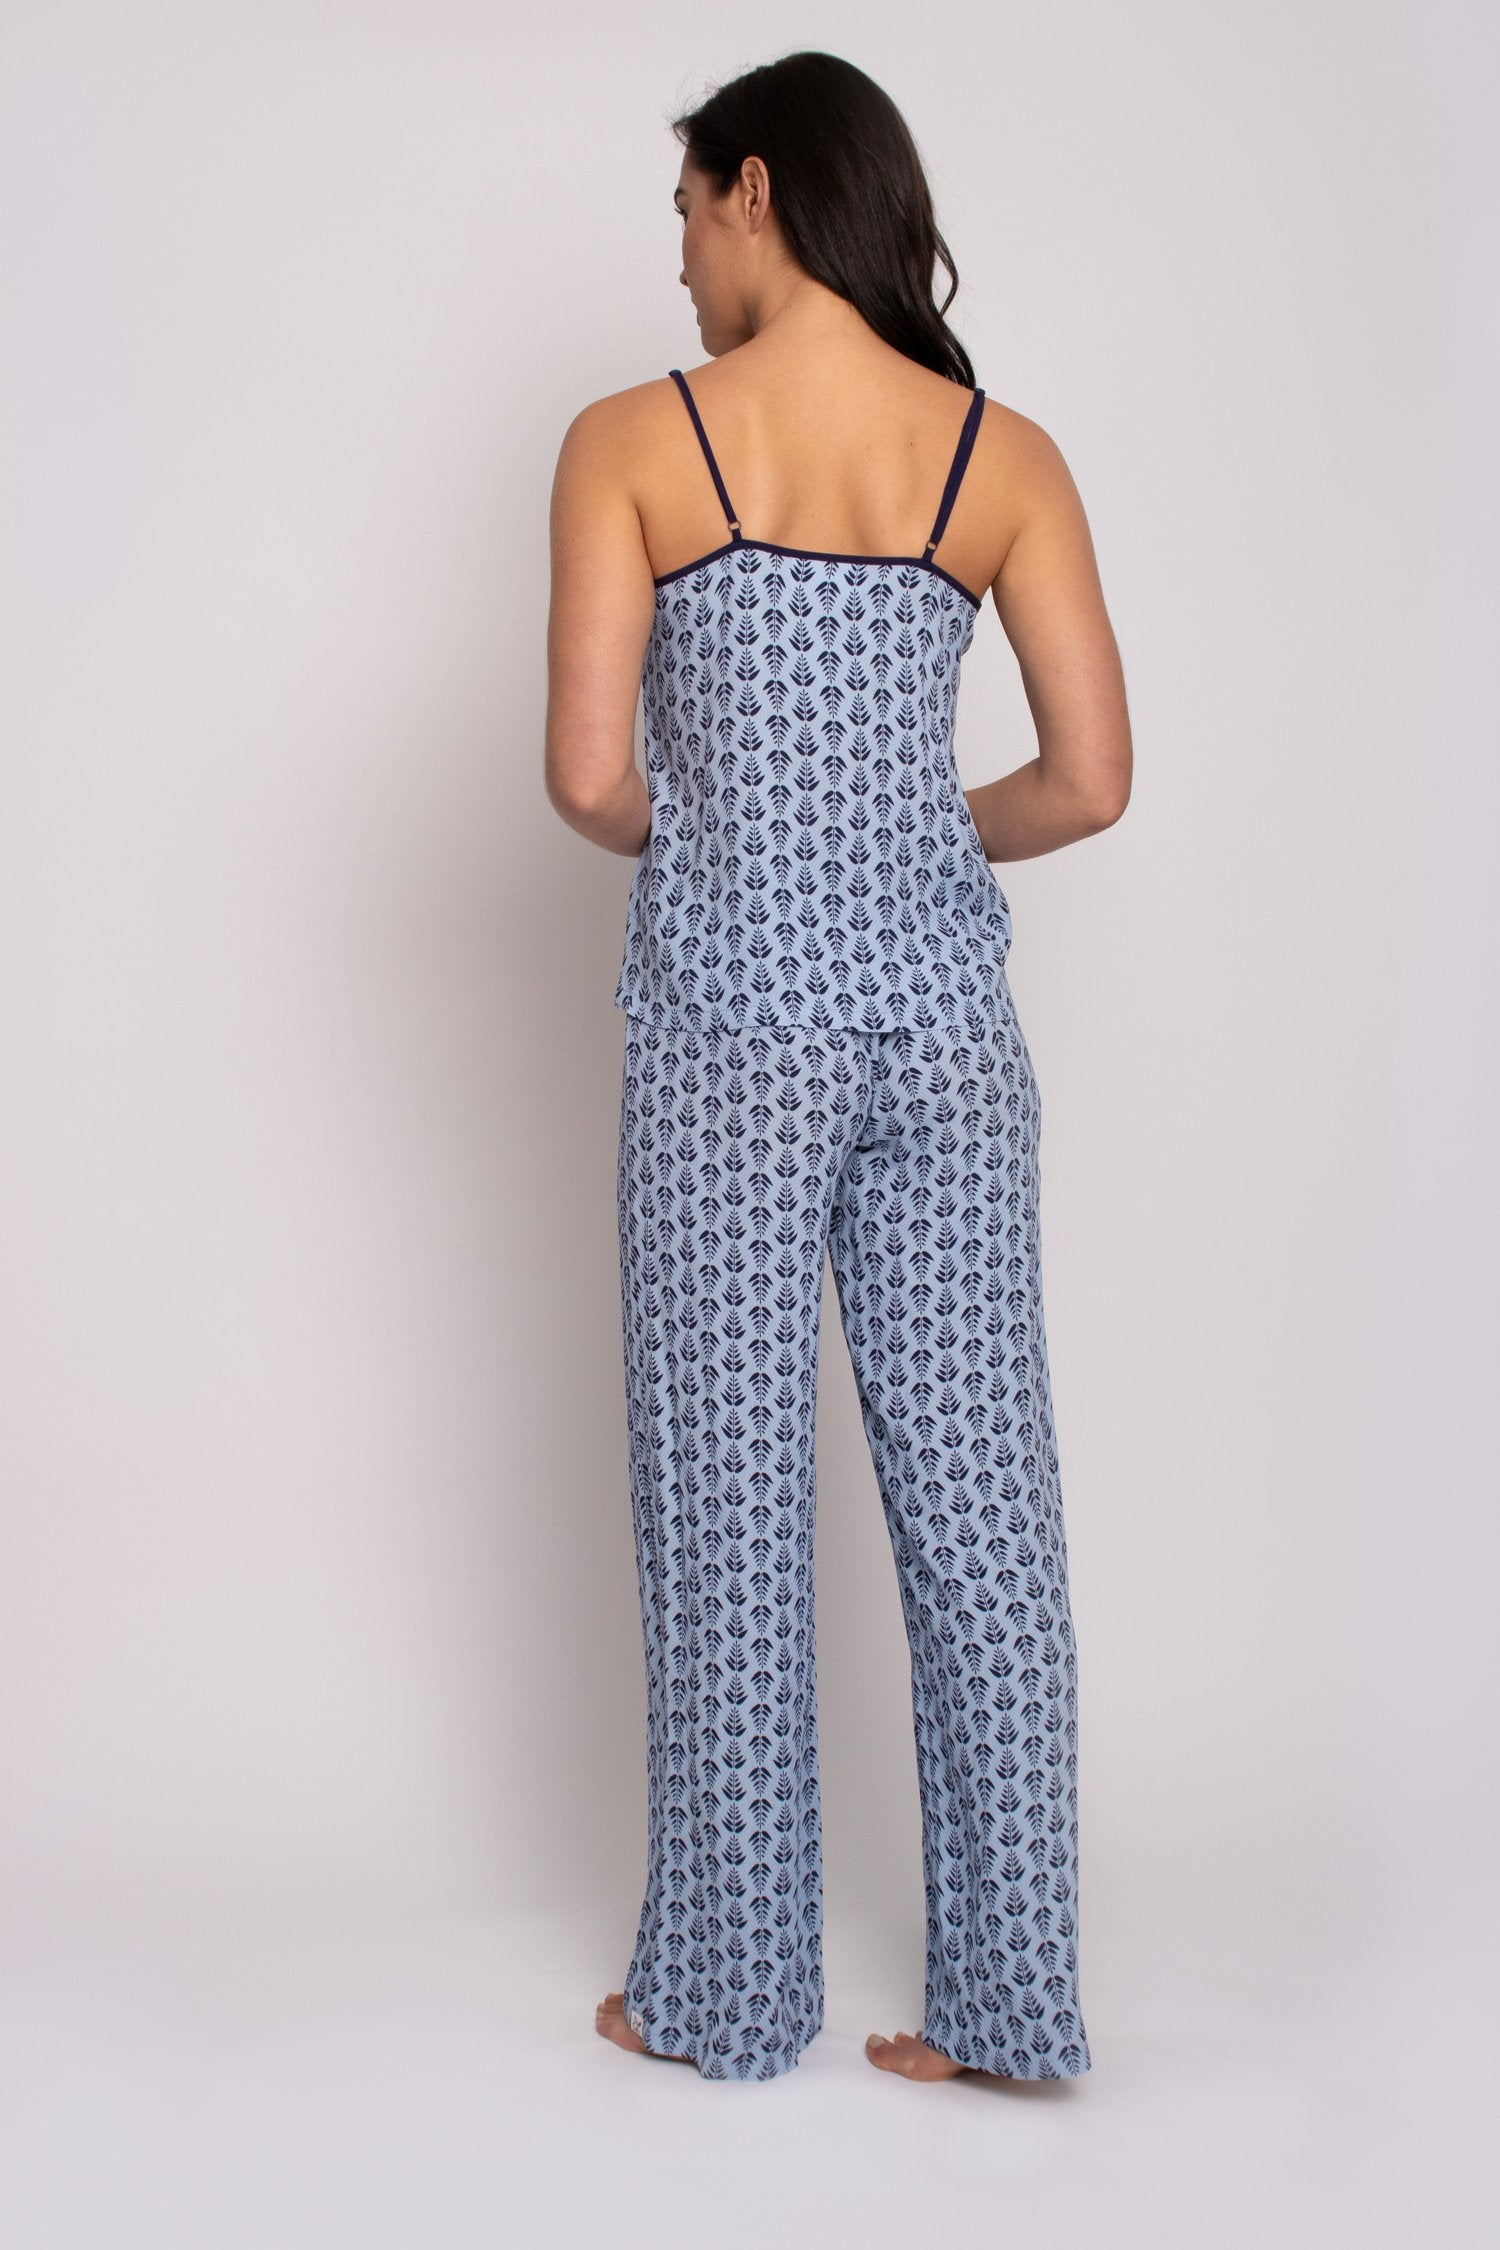 EcoVero Cami Pant Set in Blue-Sleepwear-J Steed